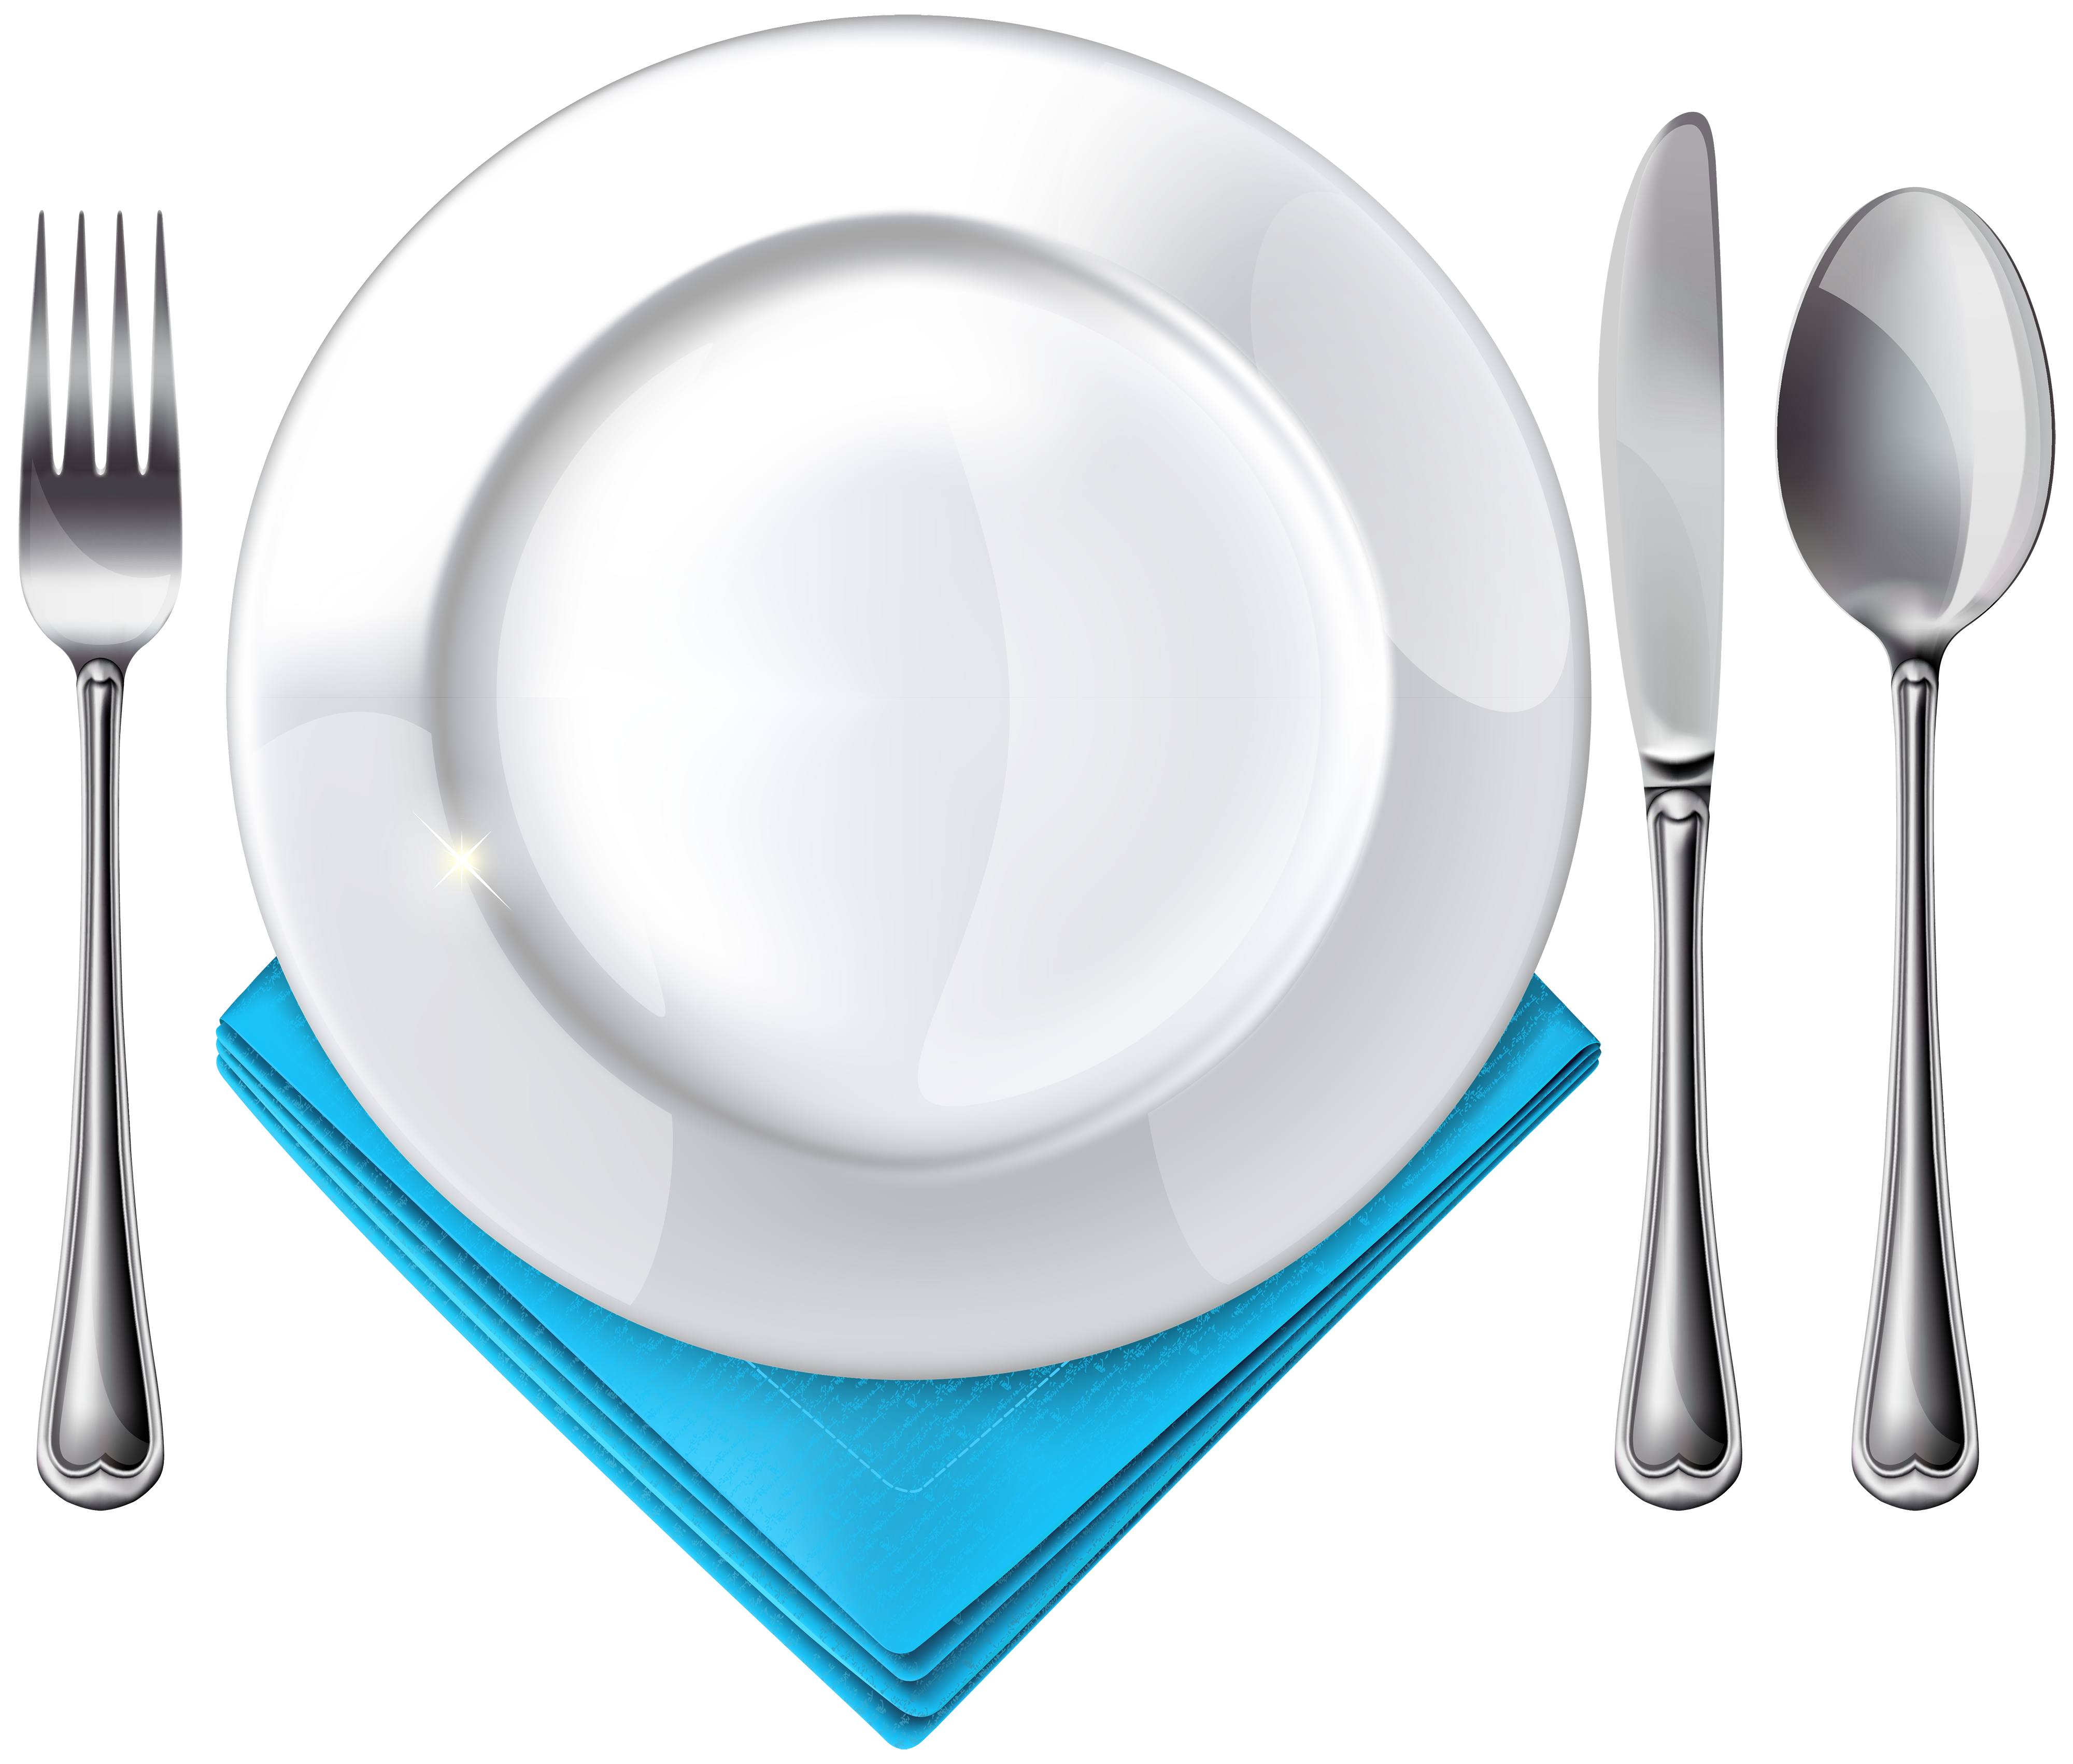 Plate emoji png. Spoon knife fork and